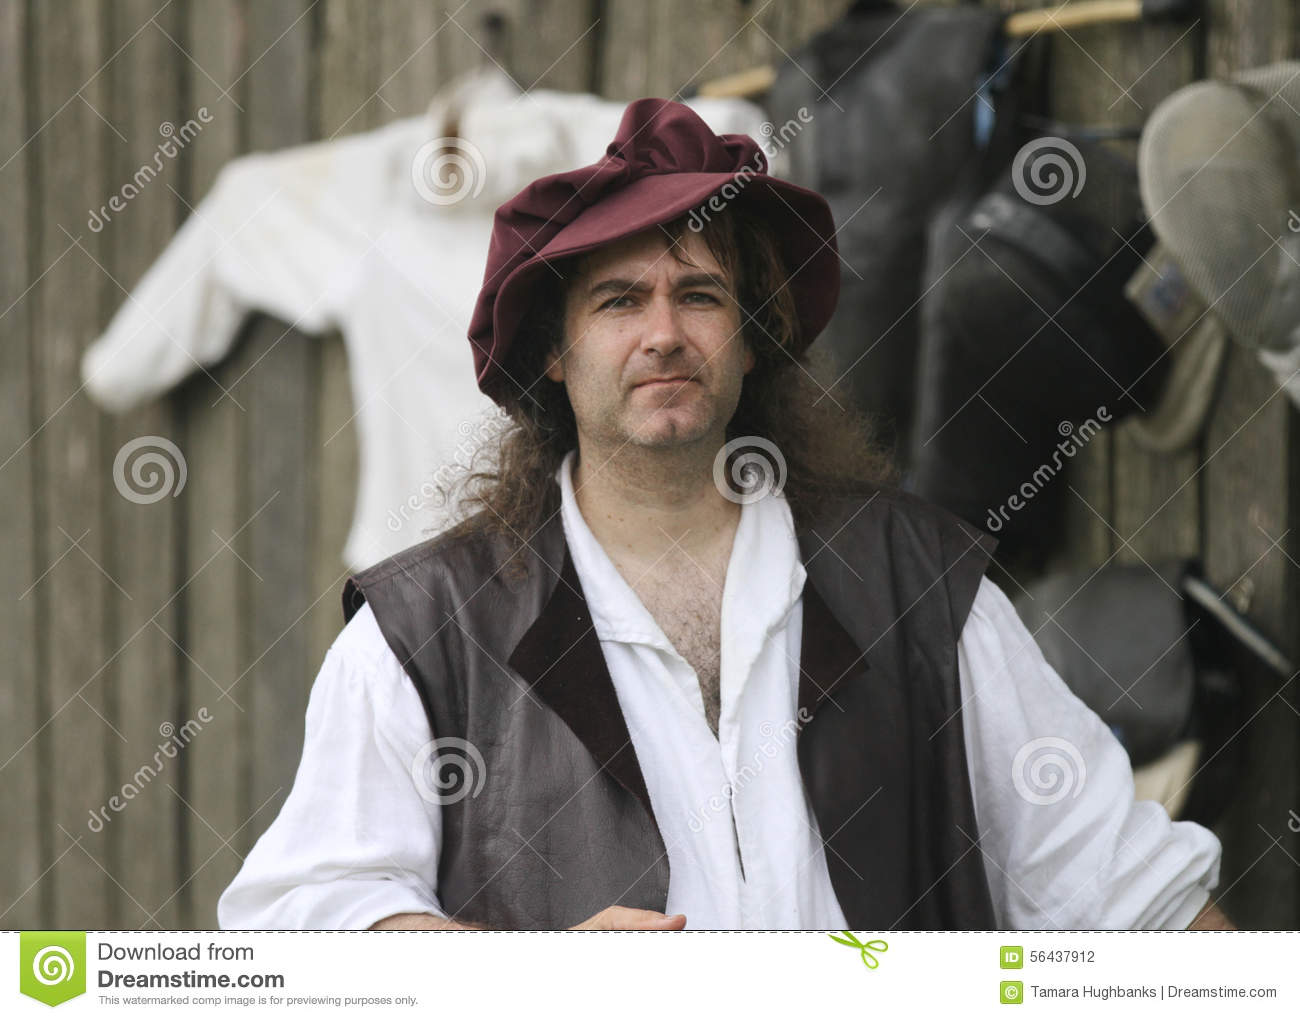 62535419c41a3 Renaissance Fair Man In Costume With Hat Editorial Photography ...